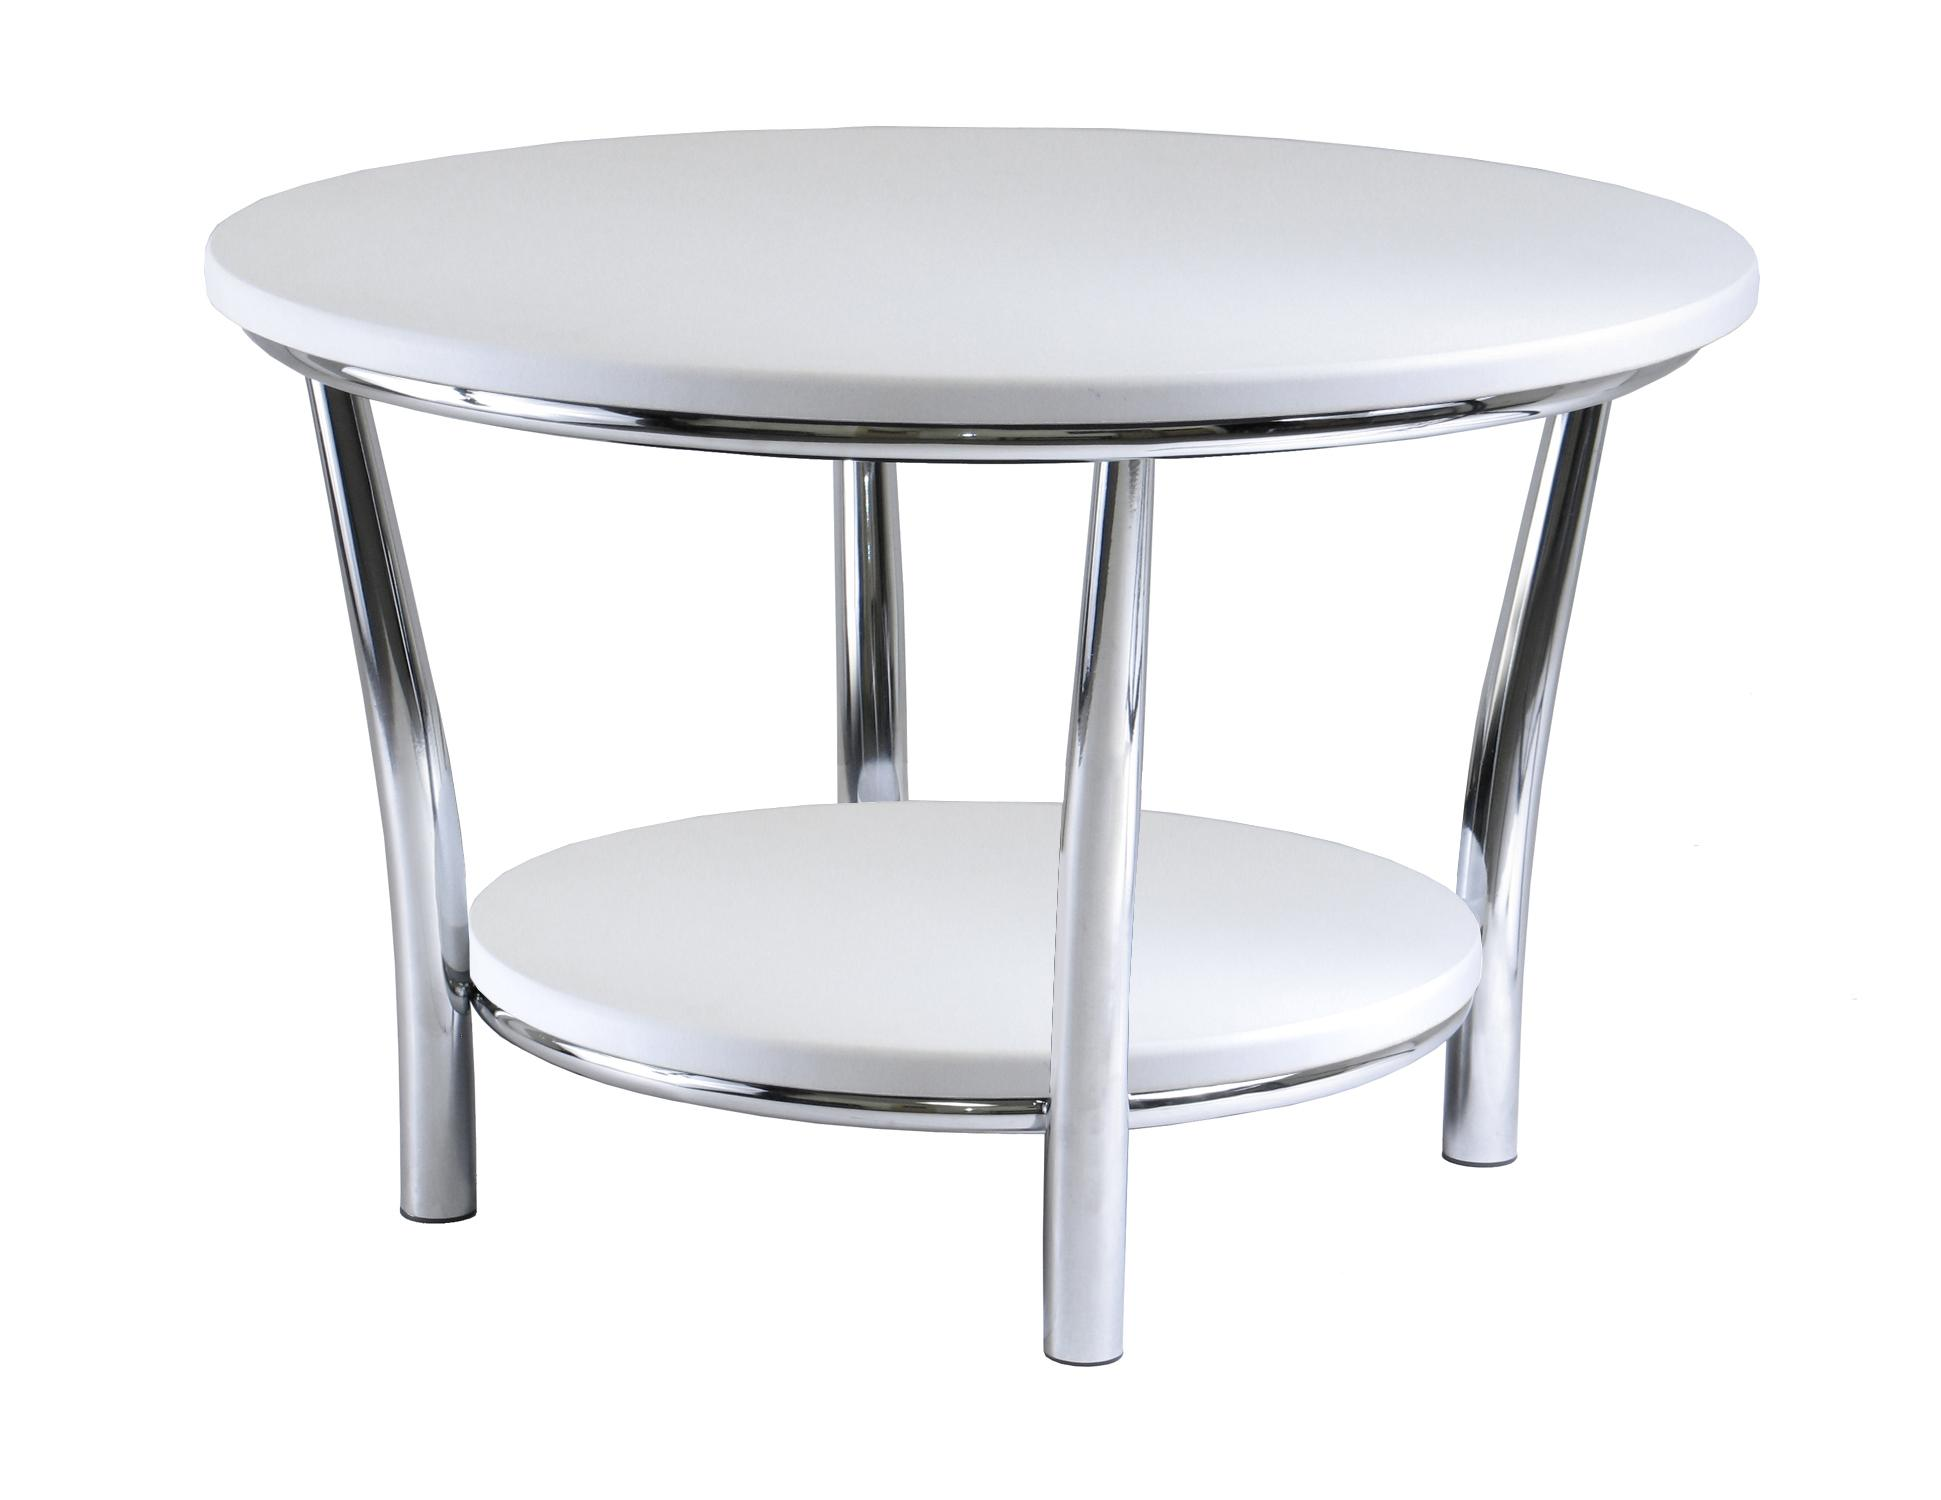 Picture of: Maya Round Coffee Table White Top Metal Legs Walmart Com Walmart Com